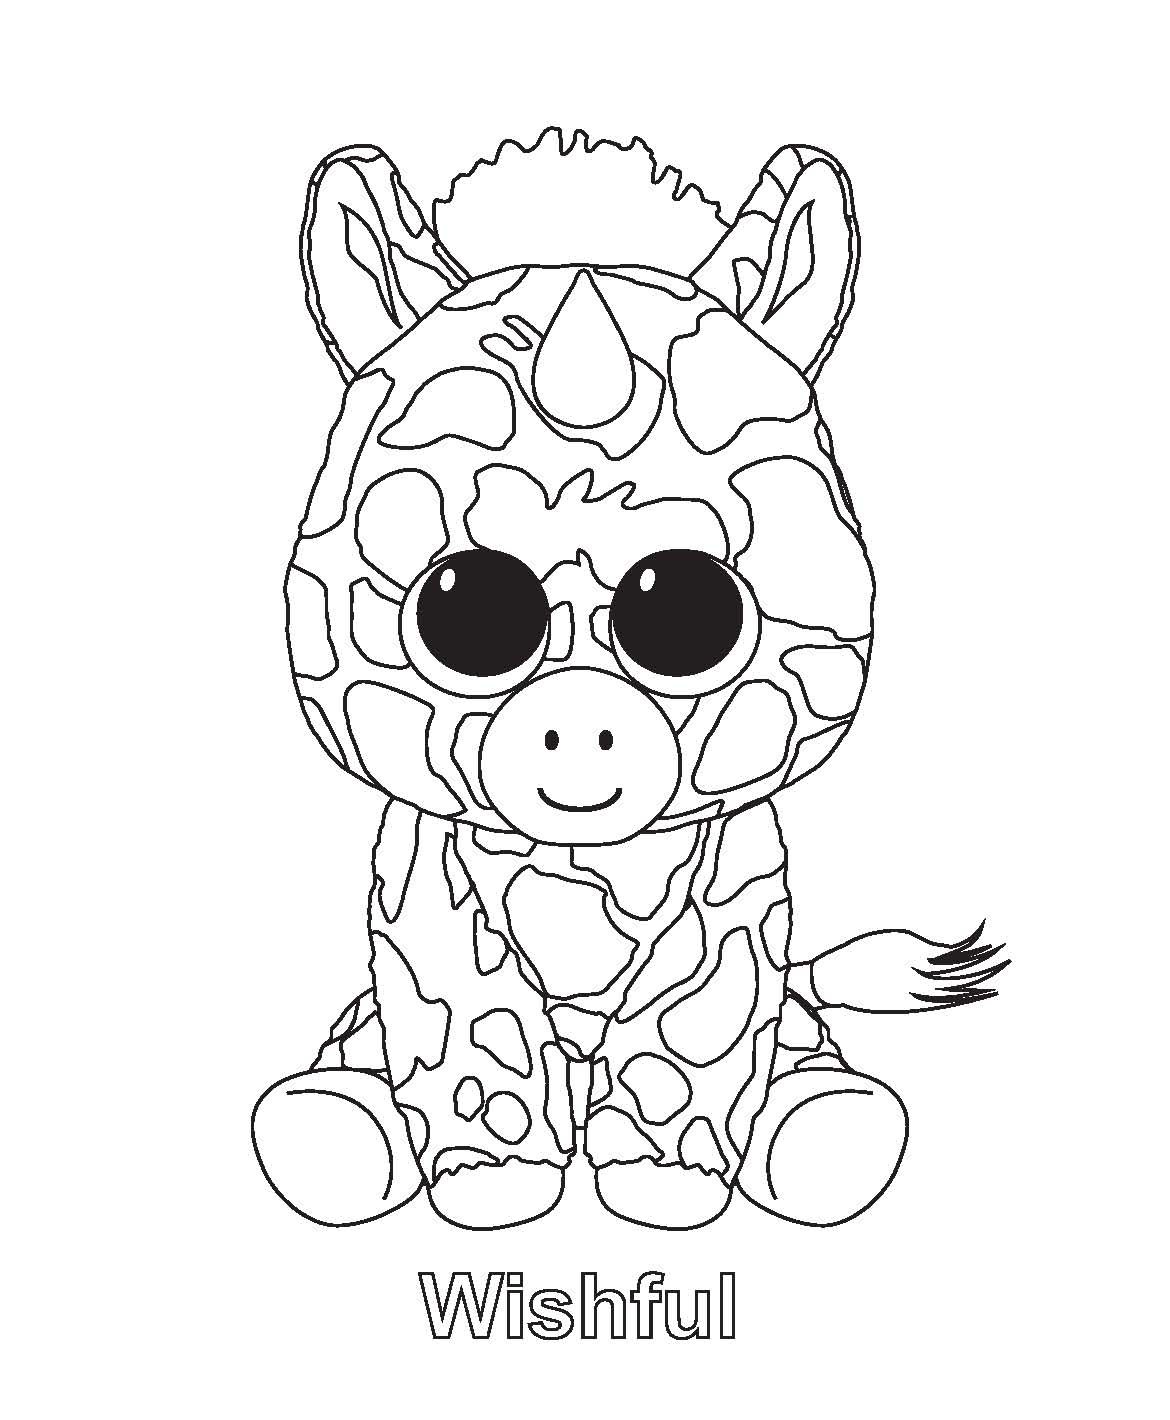 Free Boo The Dog Coloring Pages